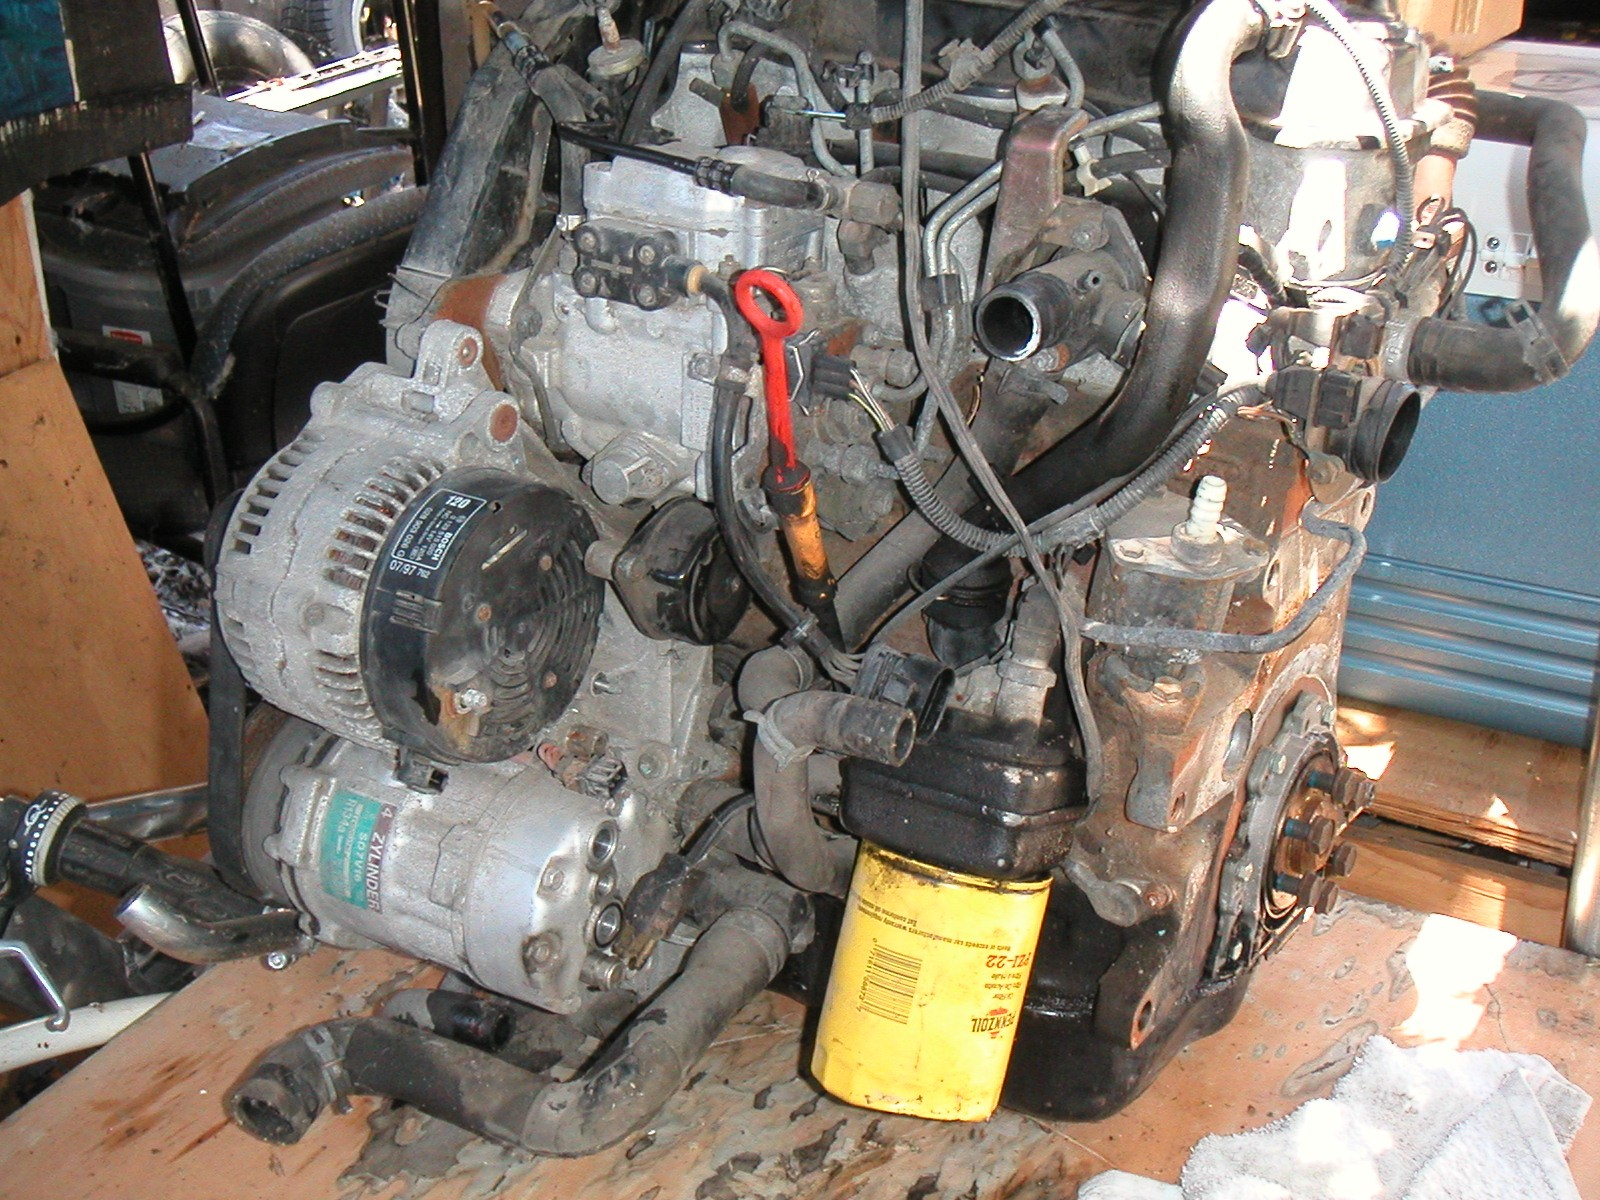 2002 Jetta 1 8t Engine Diagram Wiring Library 2001 Vw Vr6 Thermostat Location Photos For Help I Need Please Of